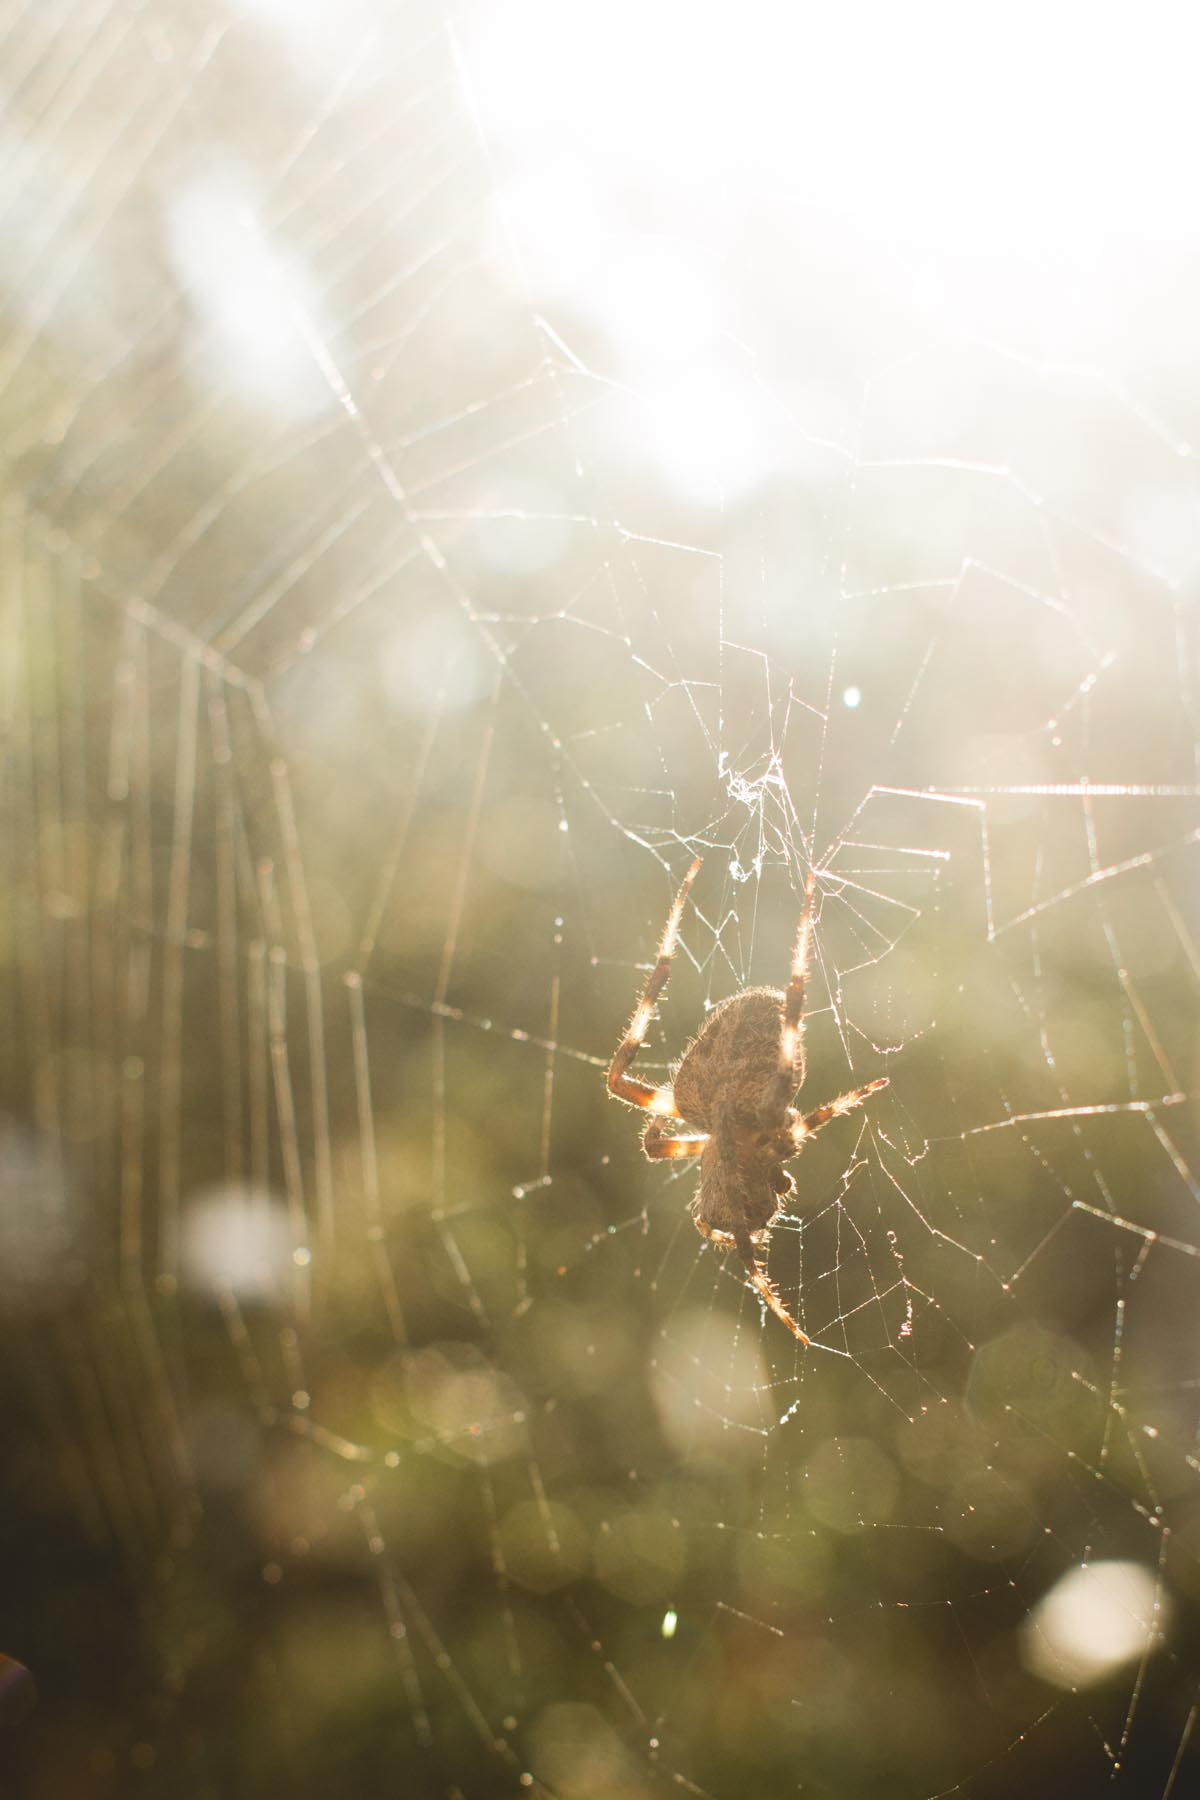 Spider in the morning sun